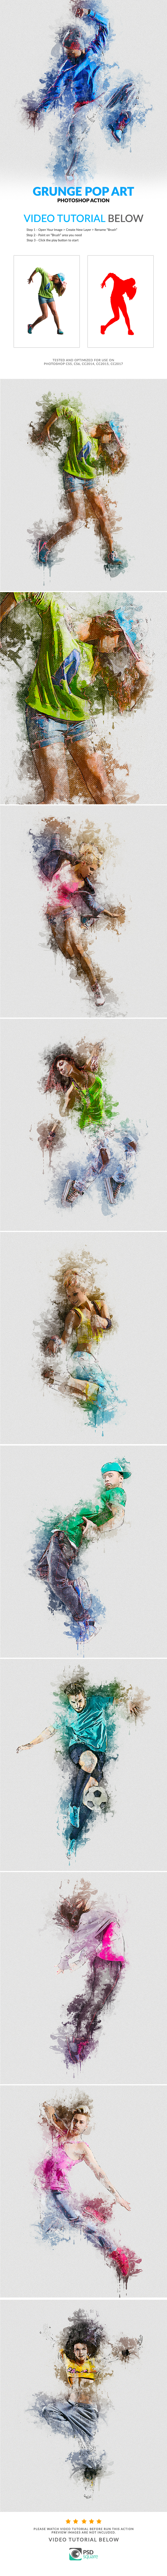 Grunge Pop Art Photoshop Action - Photo Effects Actions